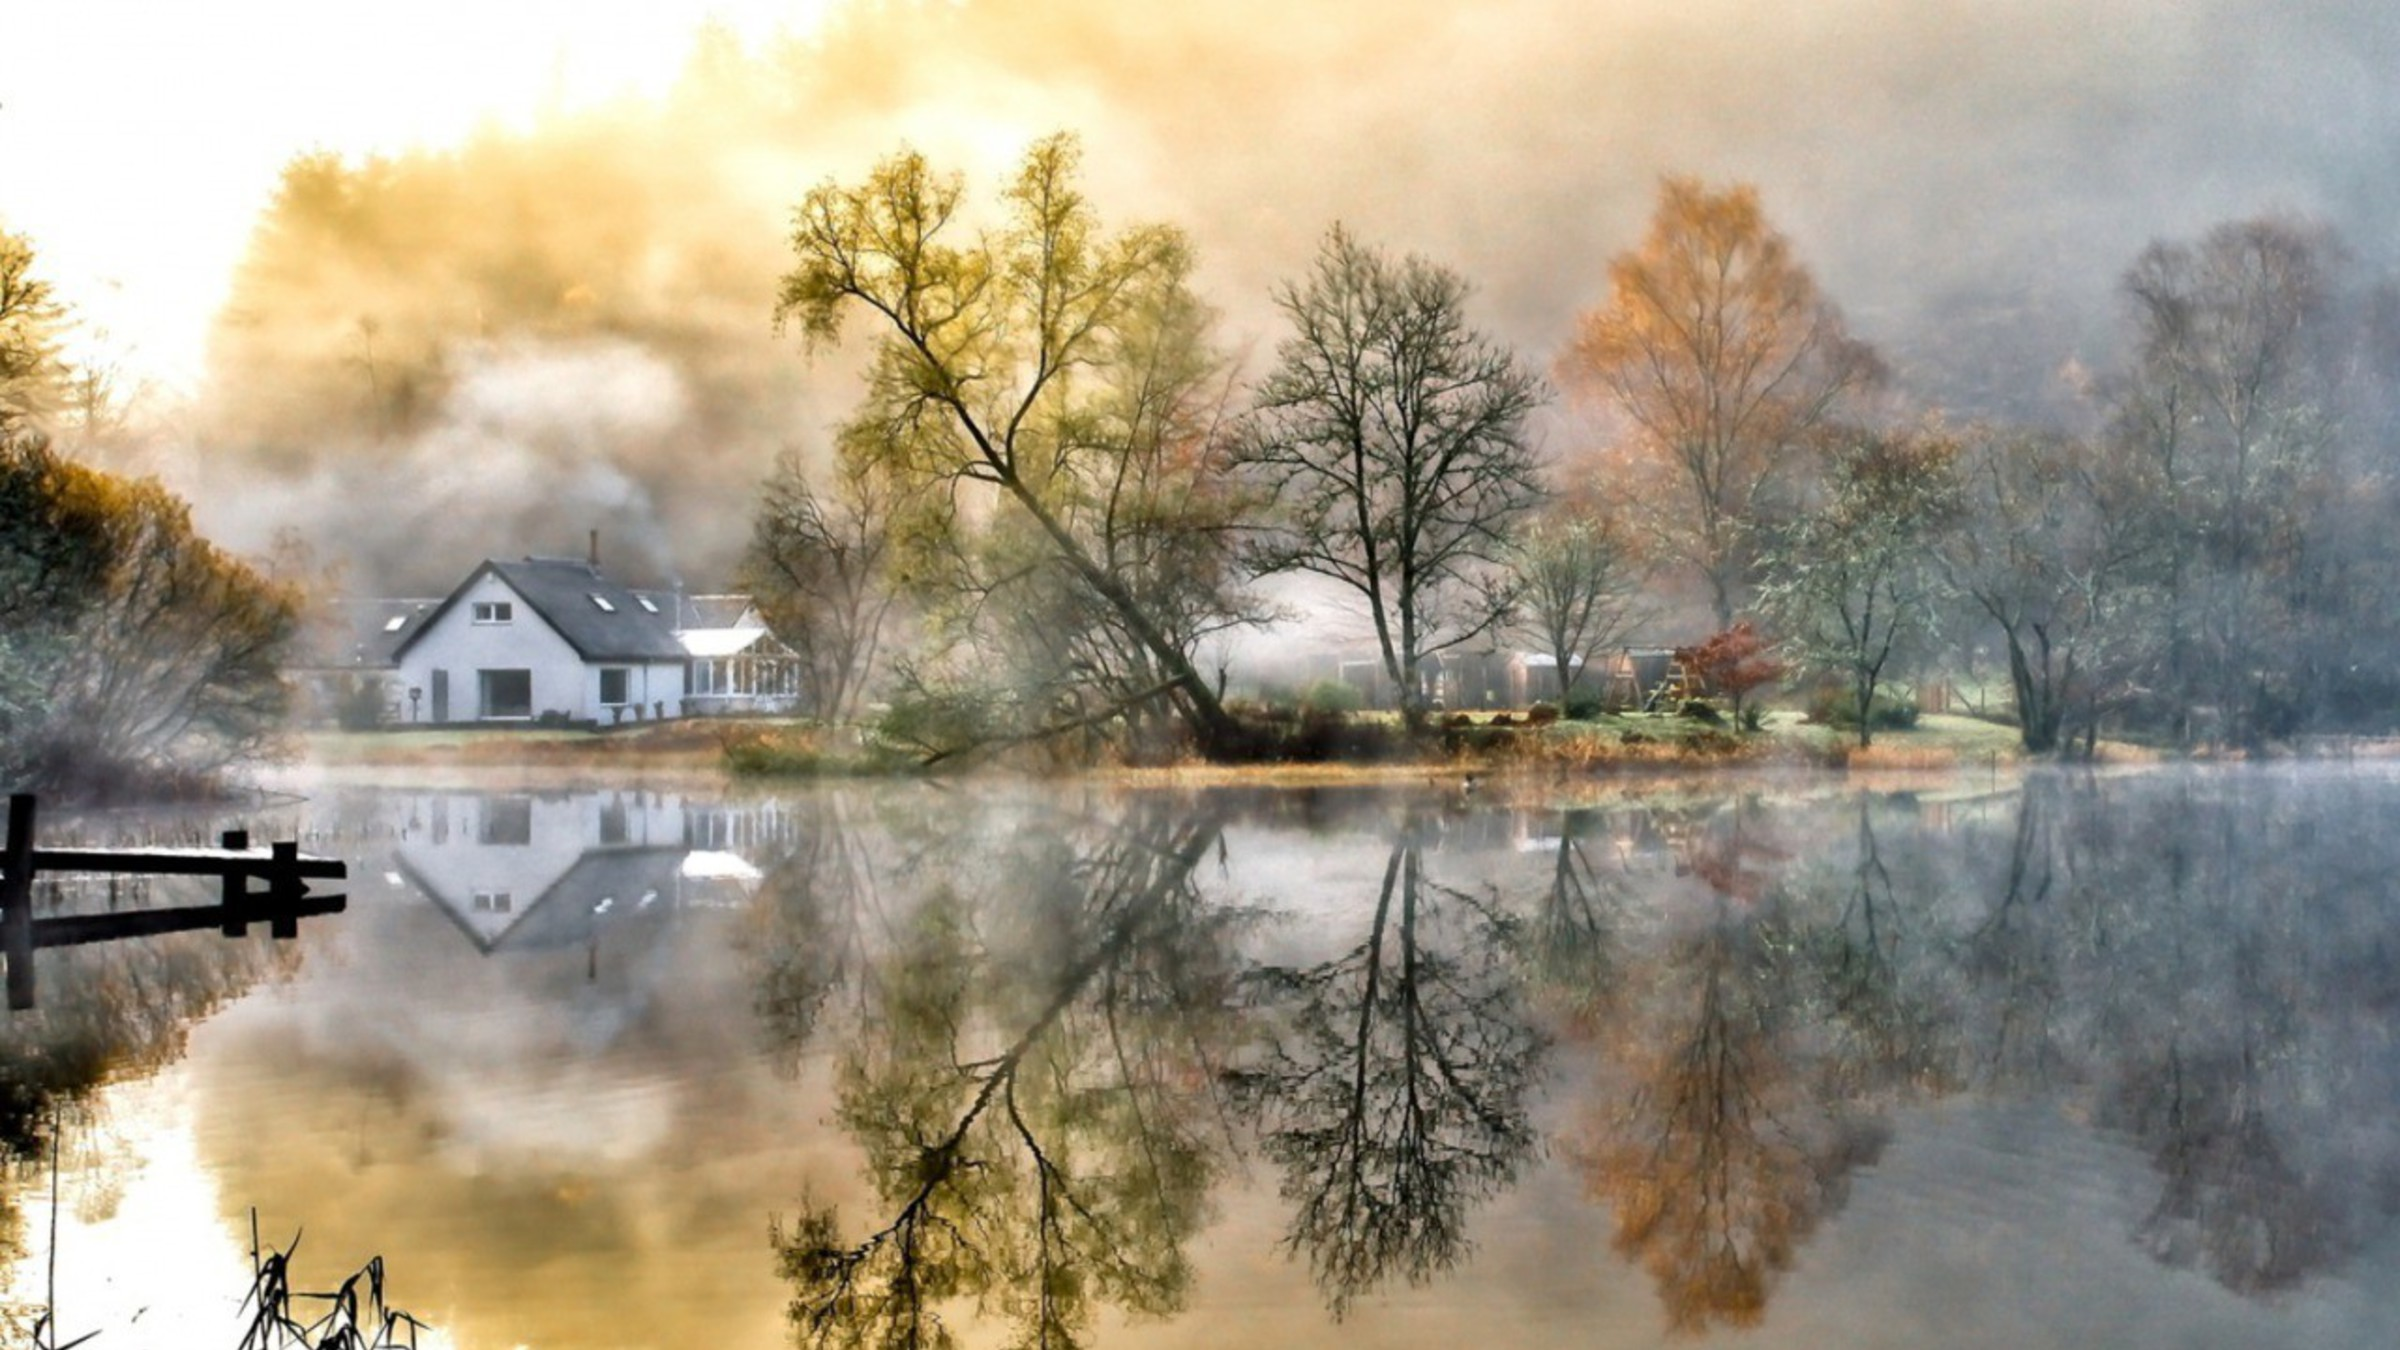 Late Fall Wallpaper Nature Country Home House Landscapes Mountains Wallpaper